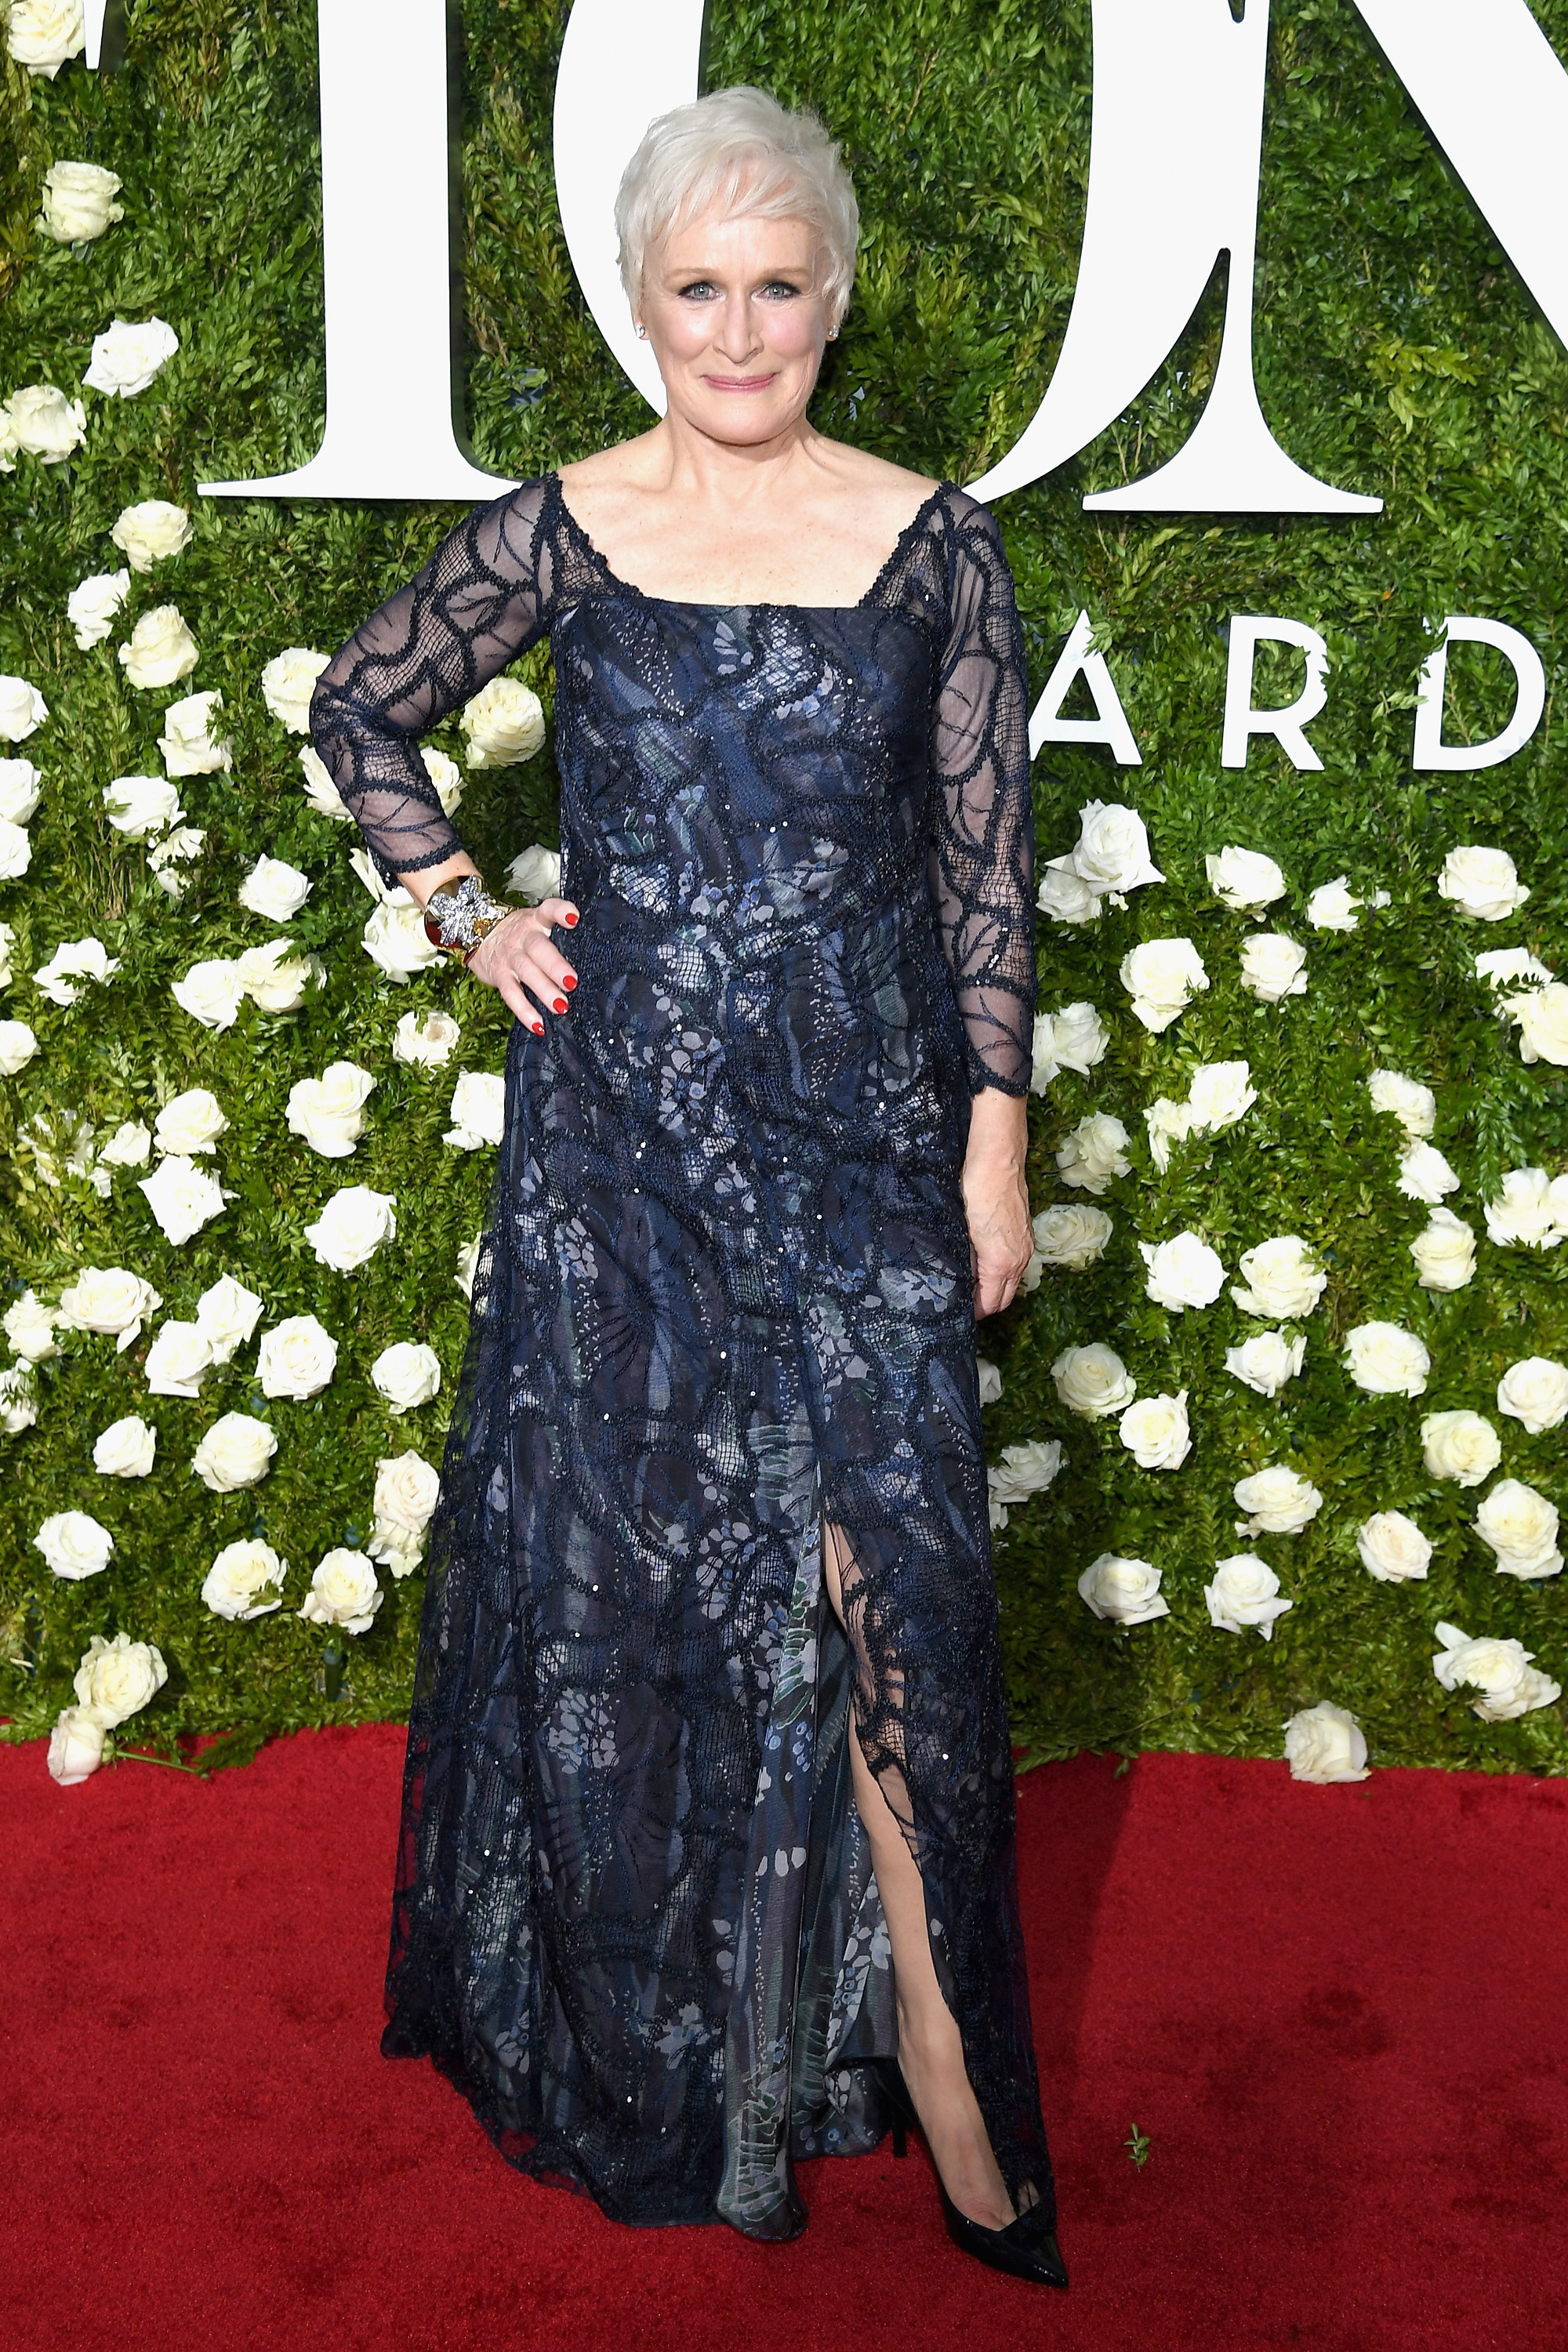 NEW YORK, NY - JUNE 11:  Glenn Close attends the 2017 Tony Awards at Radio City Music Hall on June 11, 2017 in New York City.  (Photo by Dimitrios Kambouris/Getty Images for Tony Awards Productions)